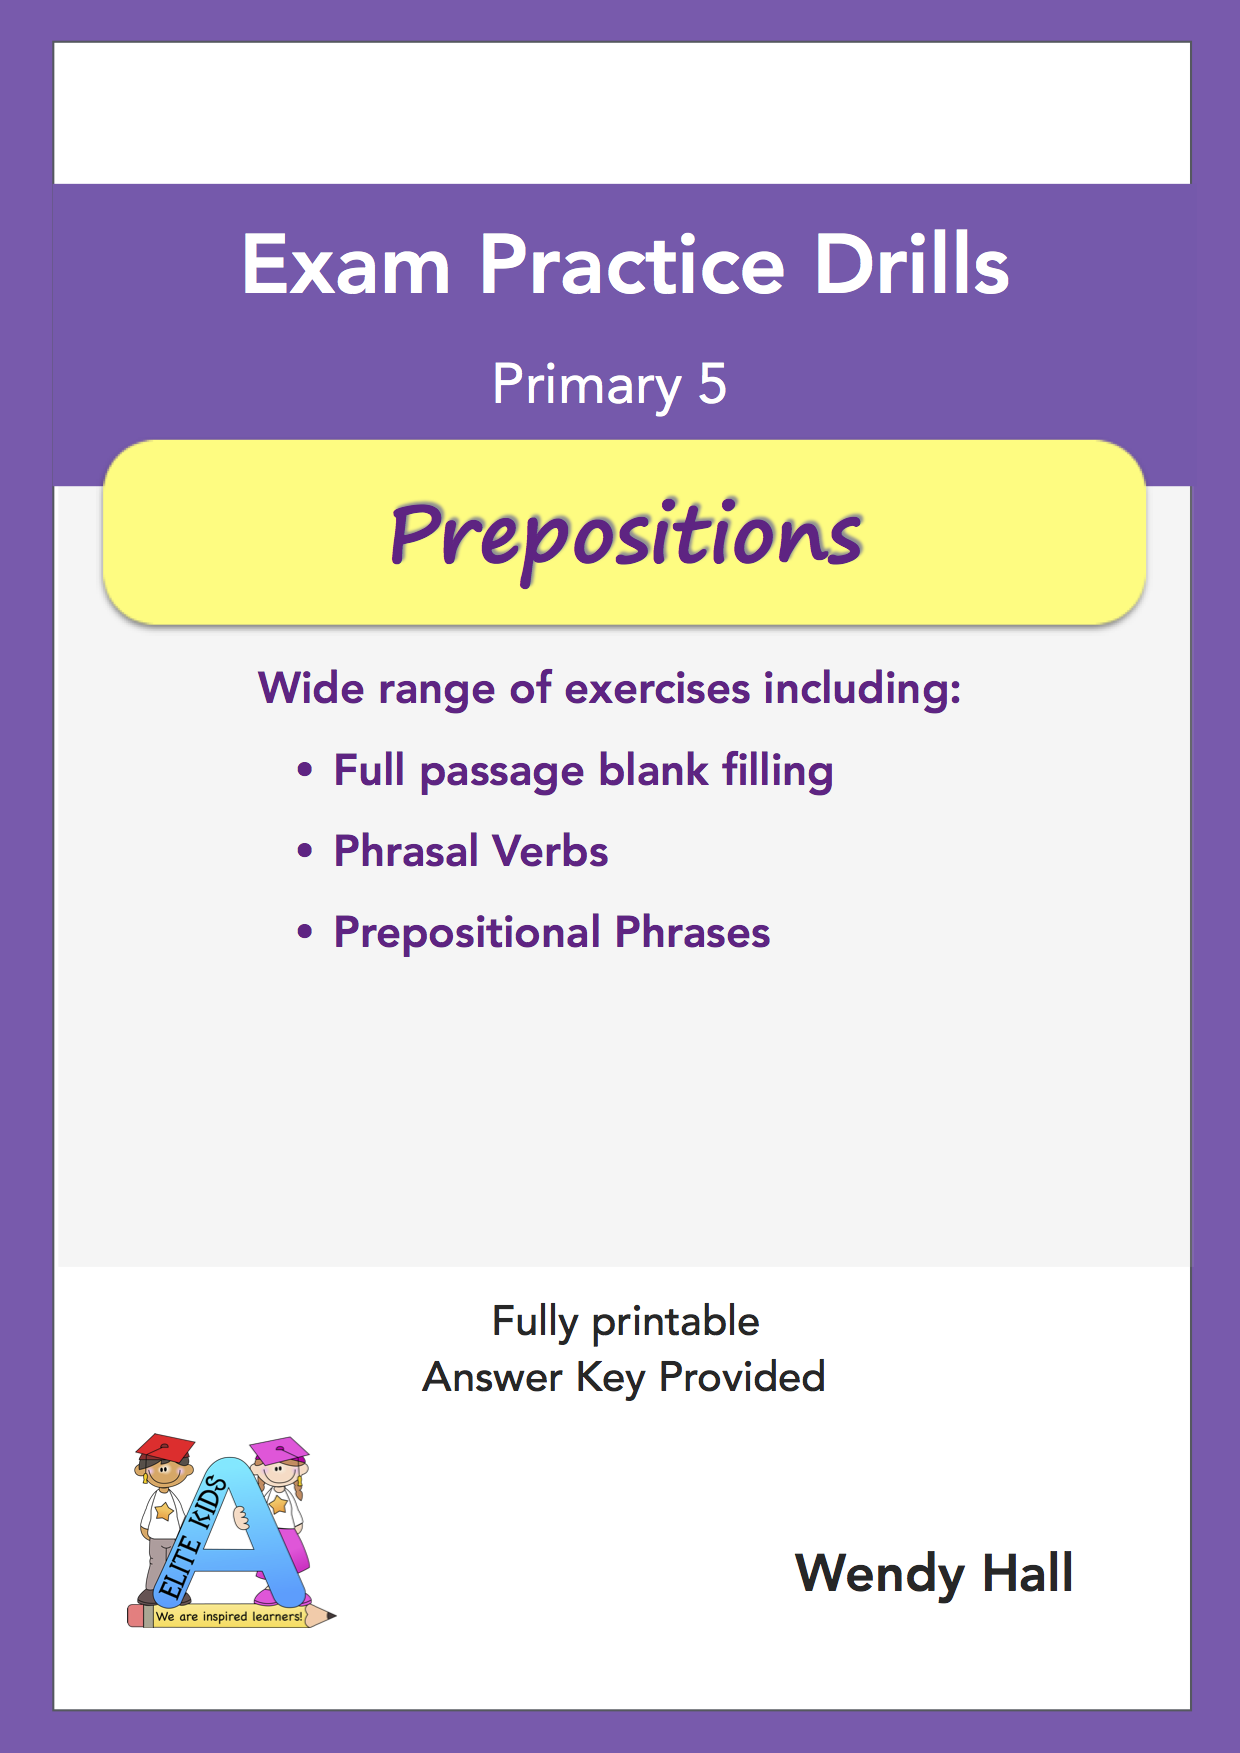 Elite Kids | Exam Practice Drills - Prepositions - Primary 5